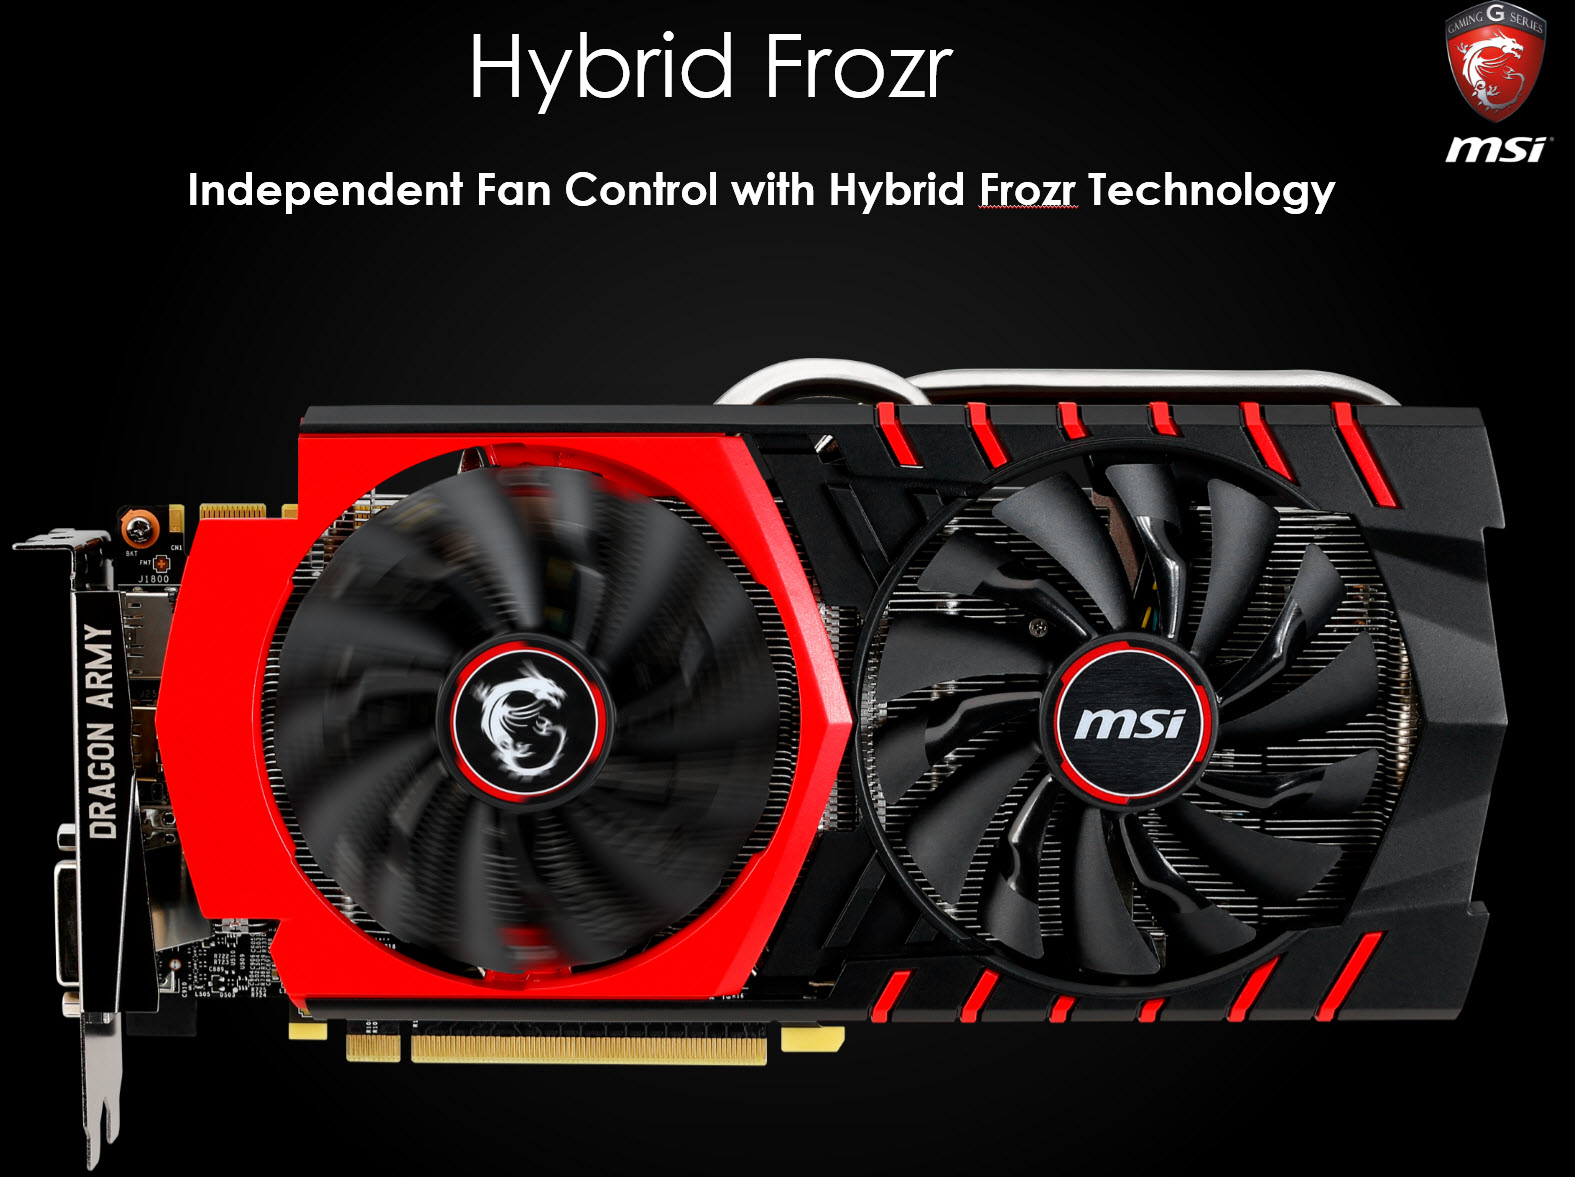 msi-twin-frozr-v-_10